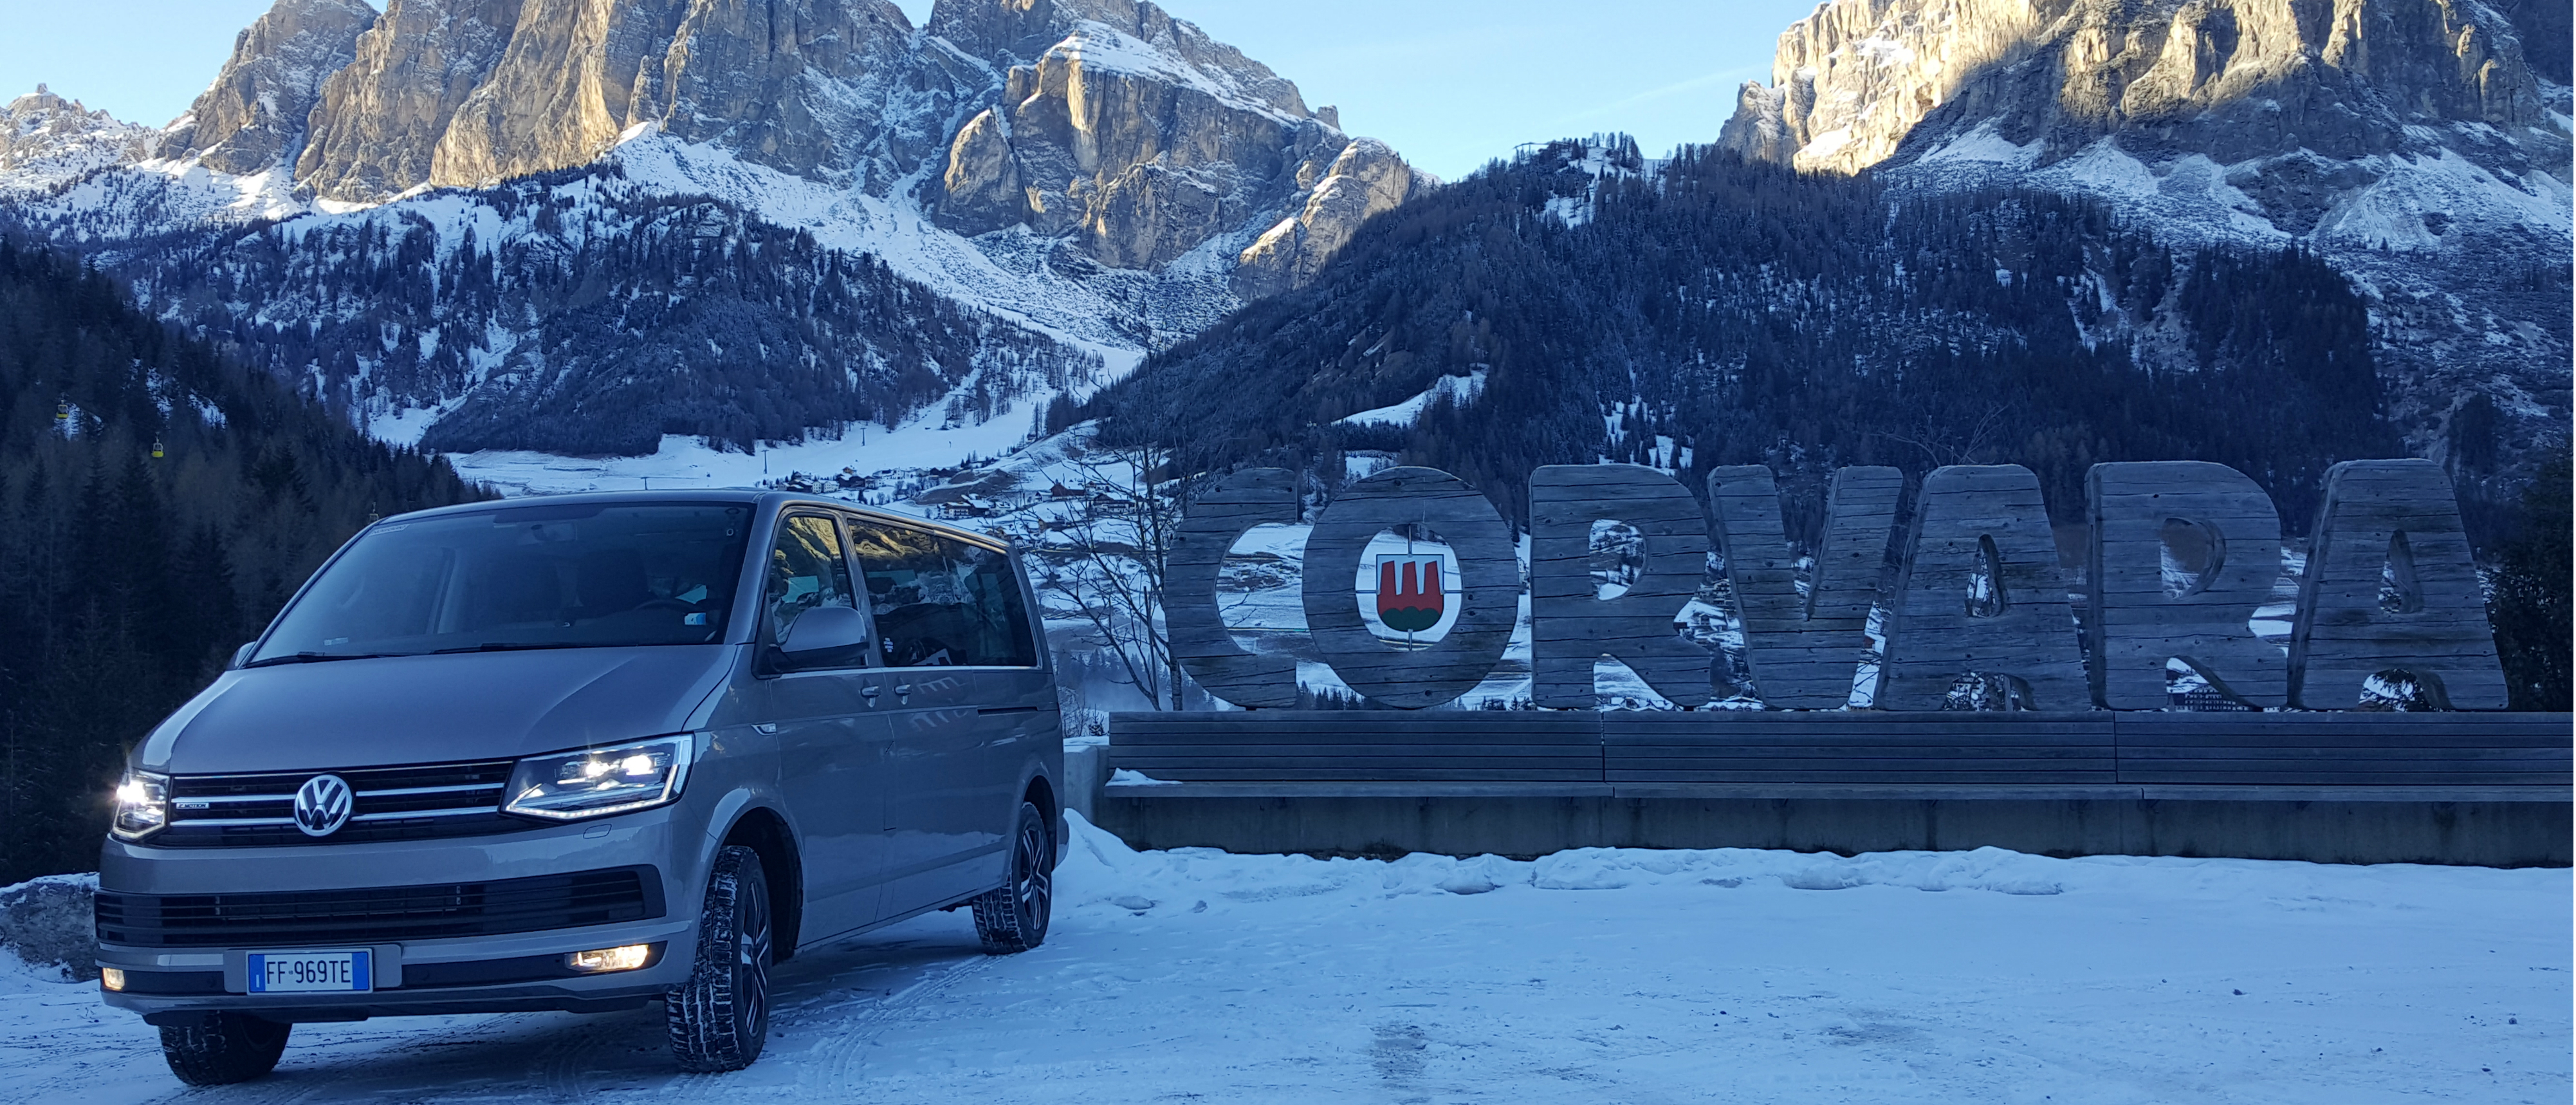 TRANSFER SERVICE FROM OR TO AIRPORTS AND TRAIN STATION TO CADORE AND THE DOLOMITES